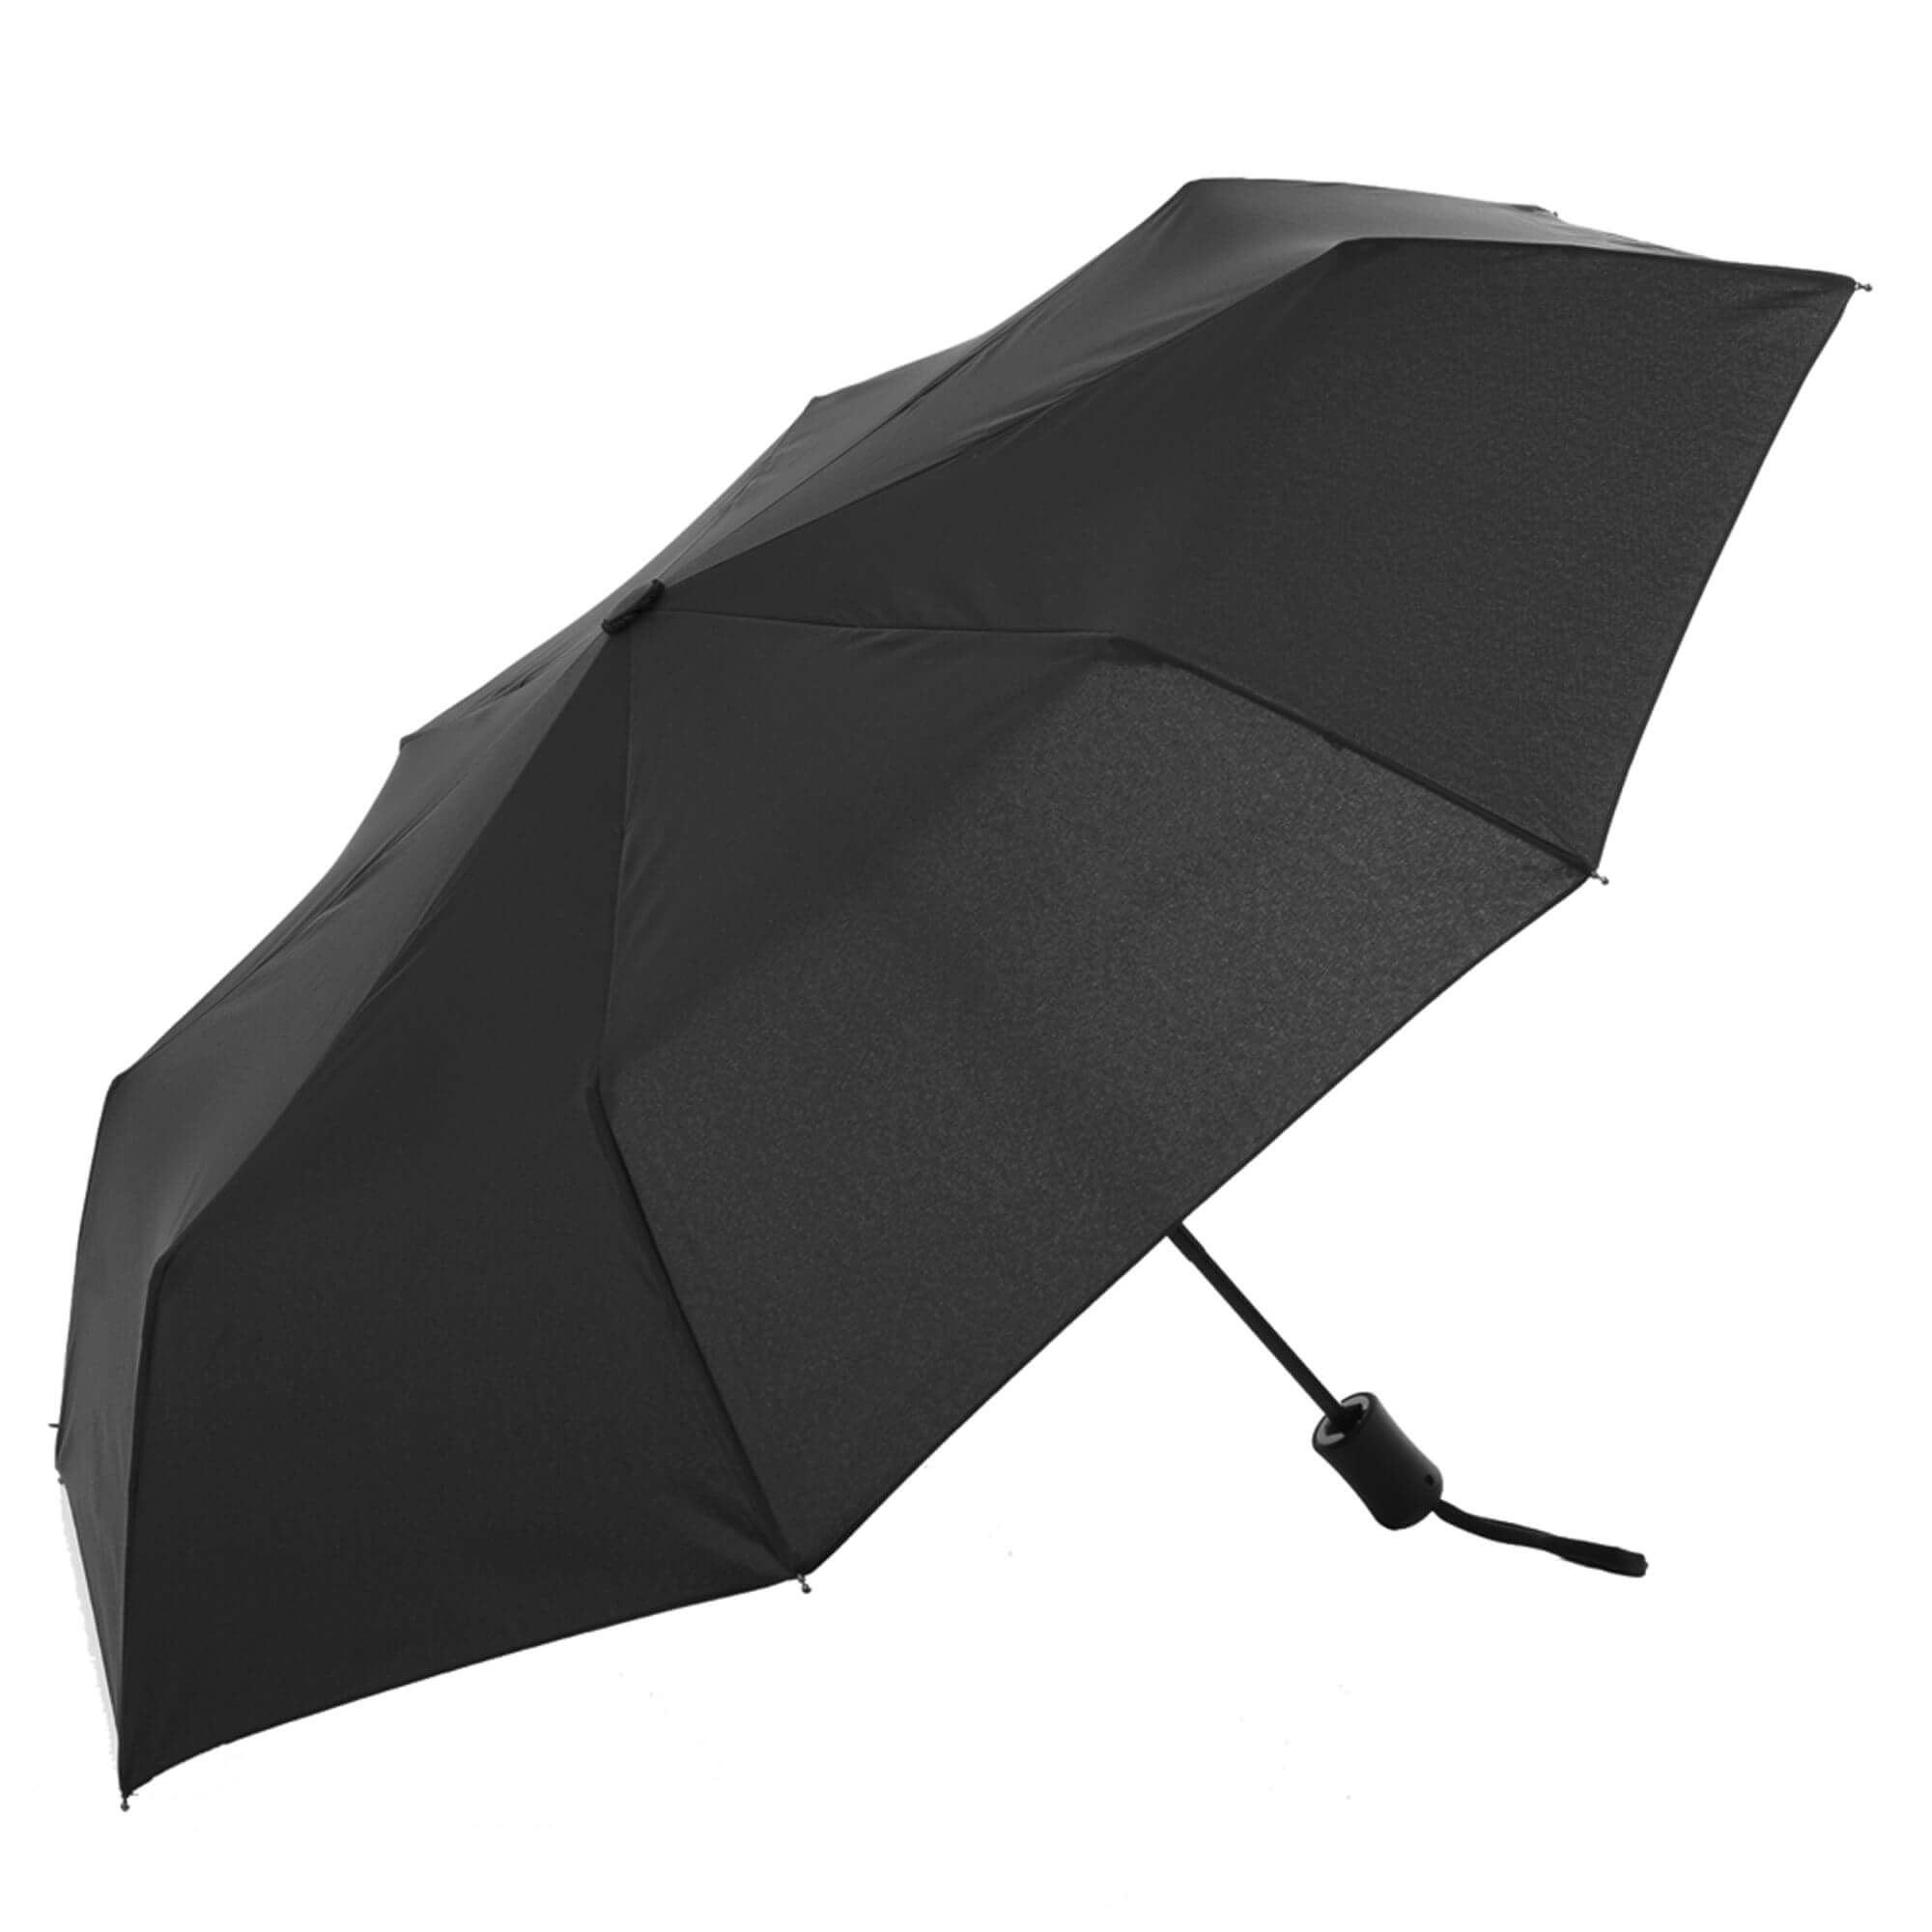 The Commuter - Automatic Opening and Closing Umbrella (3411)